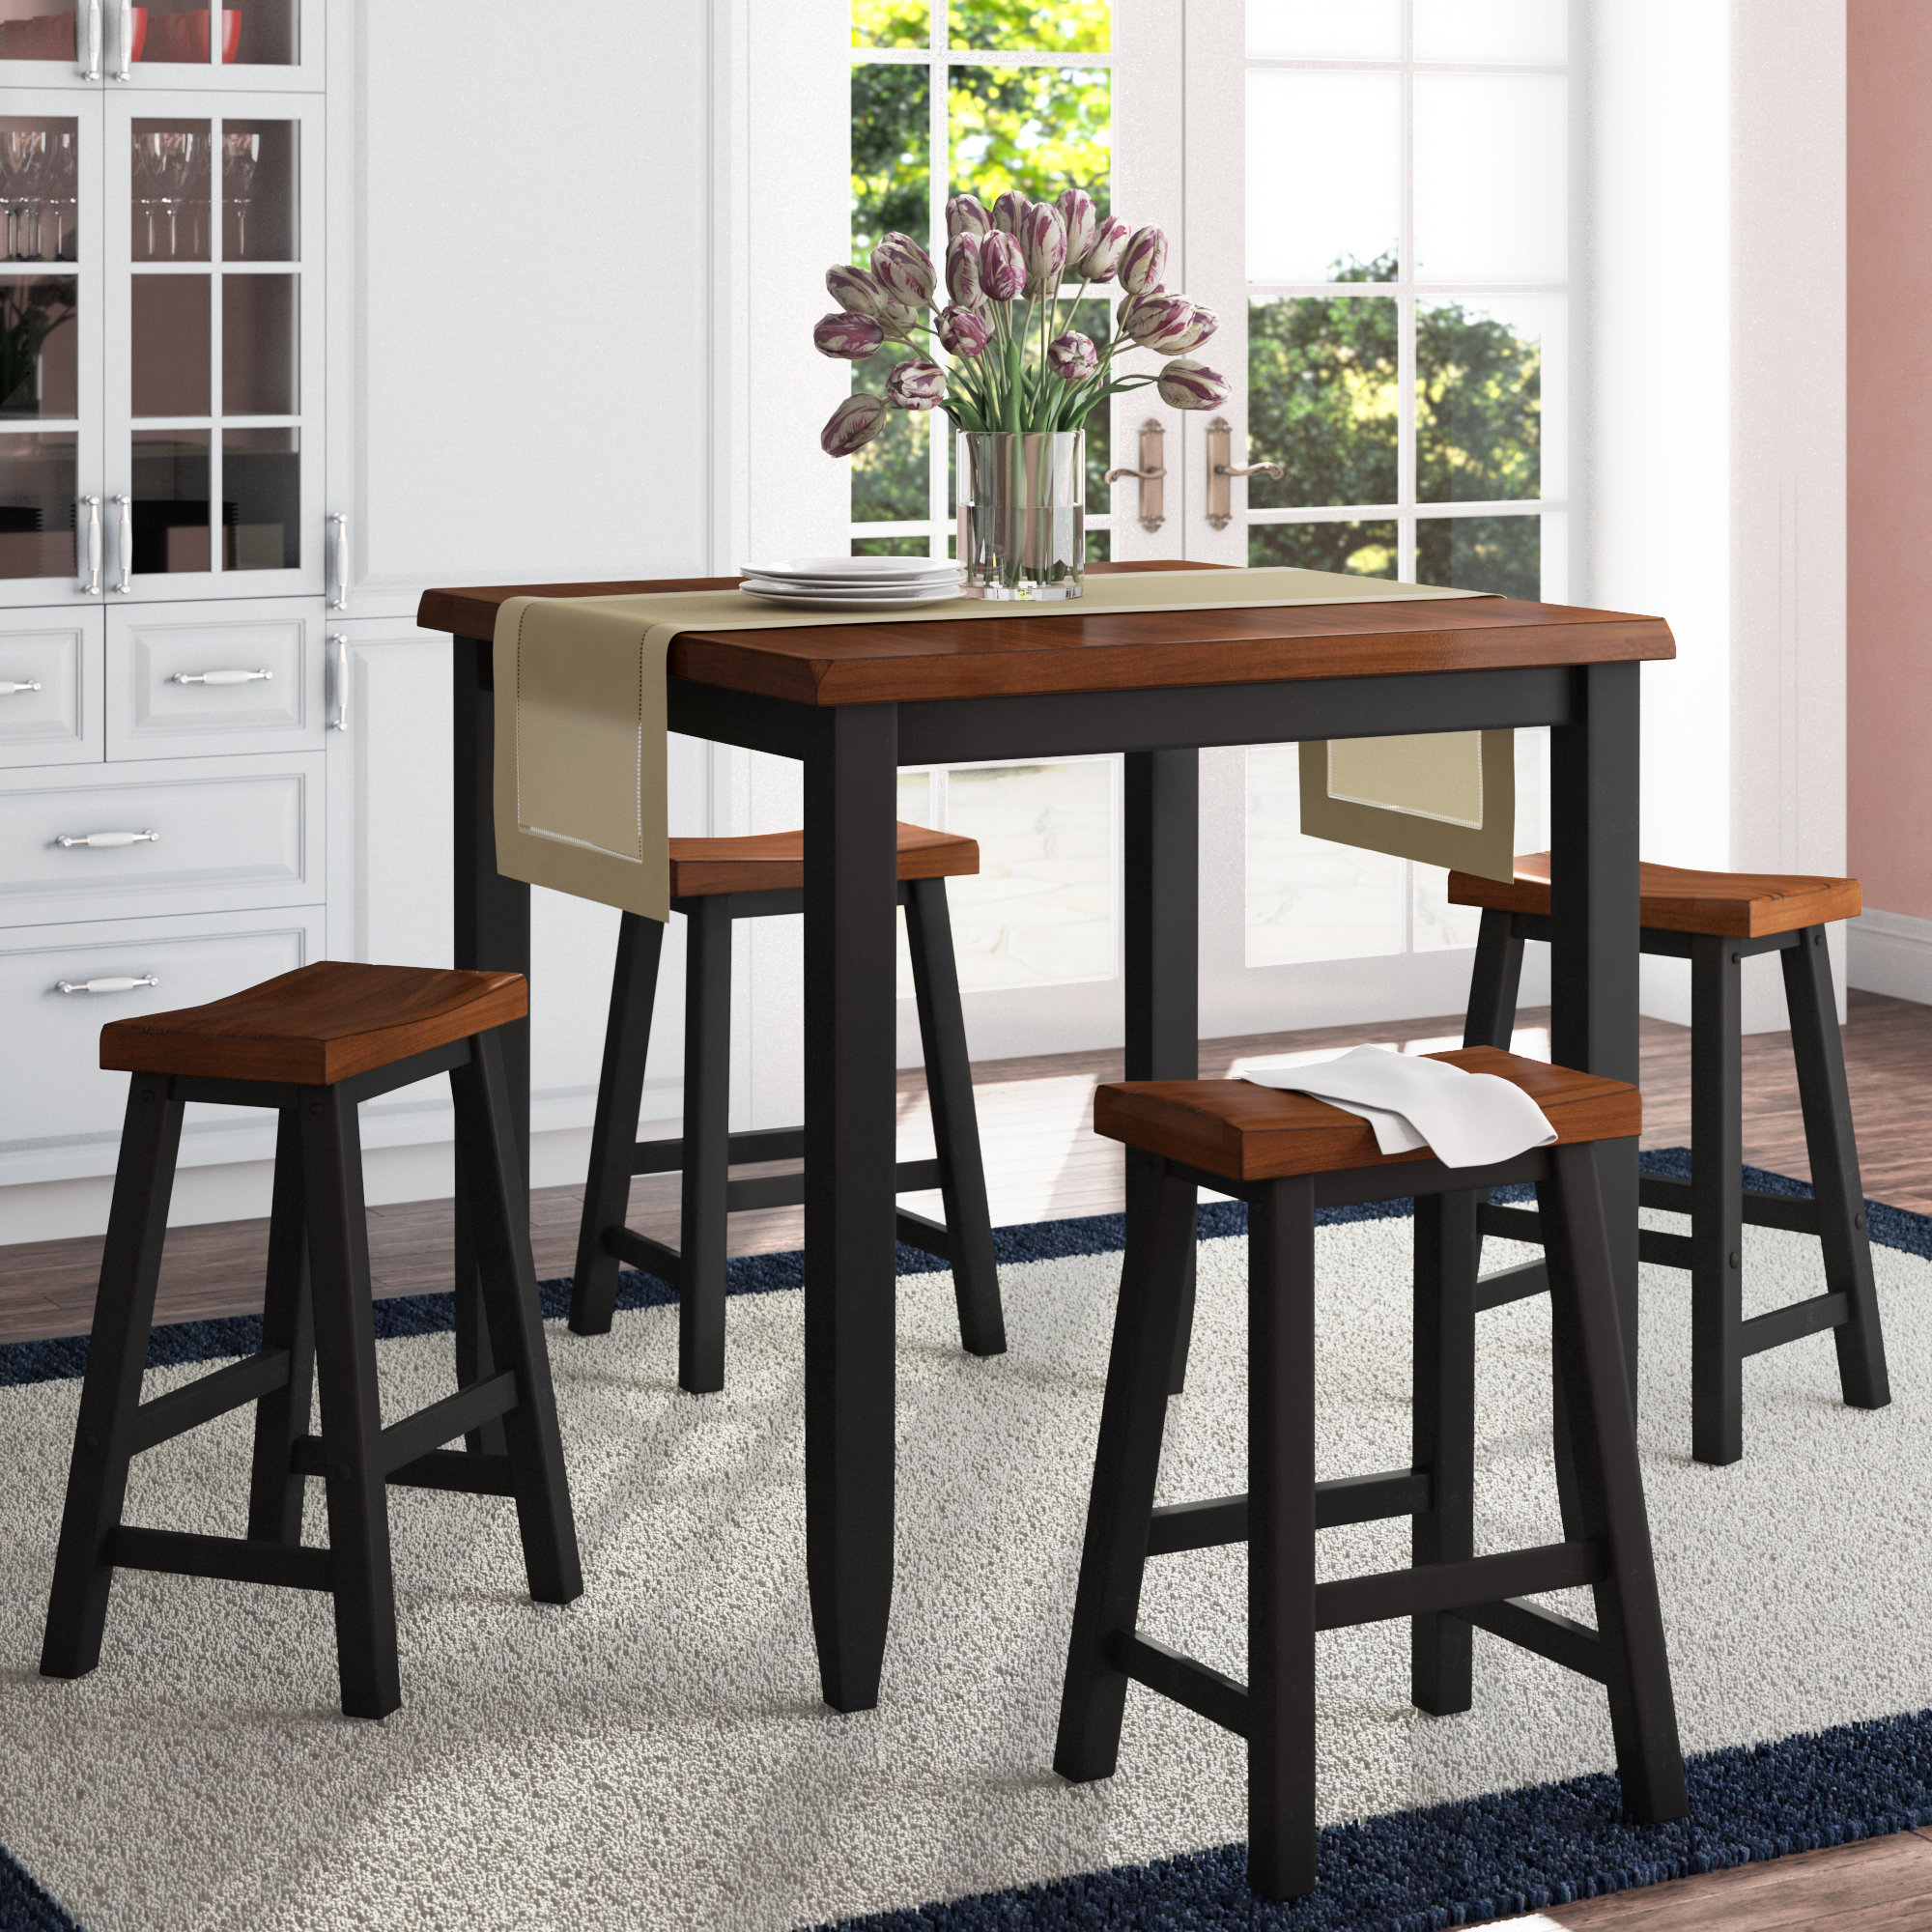 Best And Newest Darby Home Co Simmons Casegoods Ruggerio 5 Piece Counter Height Pub Intended For Winsted 4 Piece Counter Height Dining Sets (View 4 of 20)